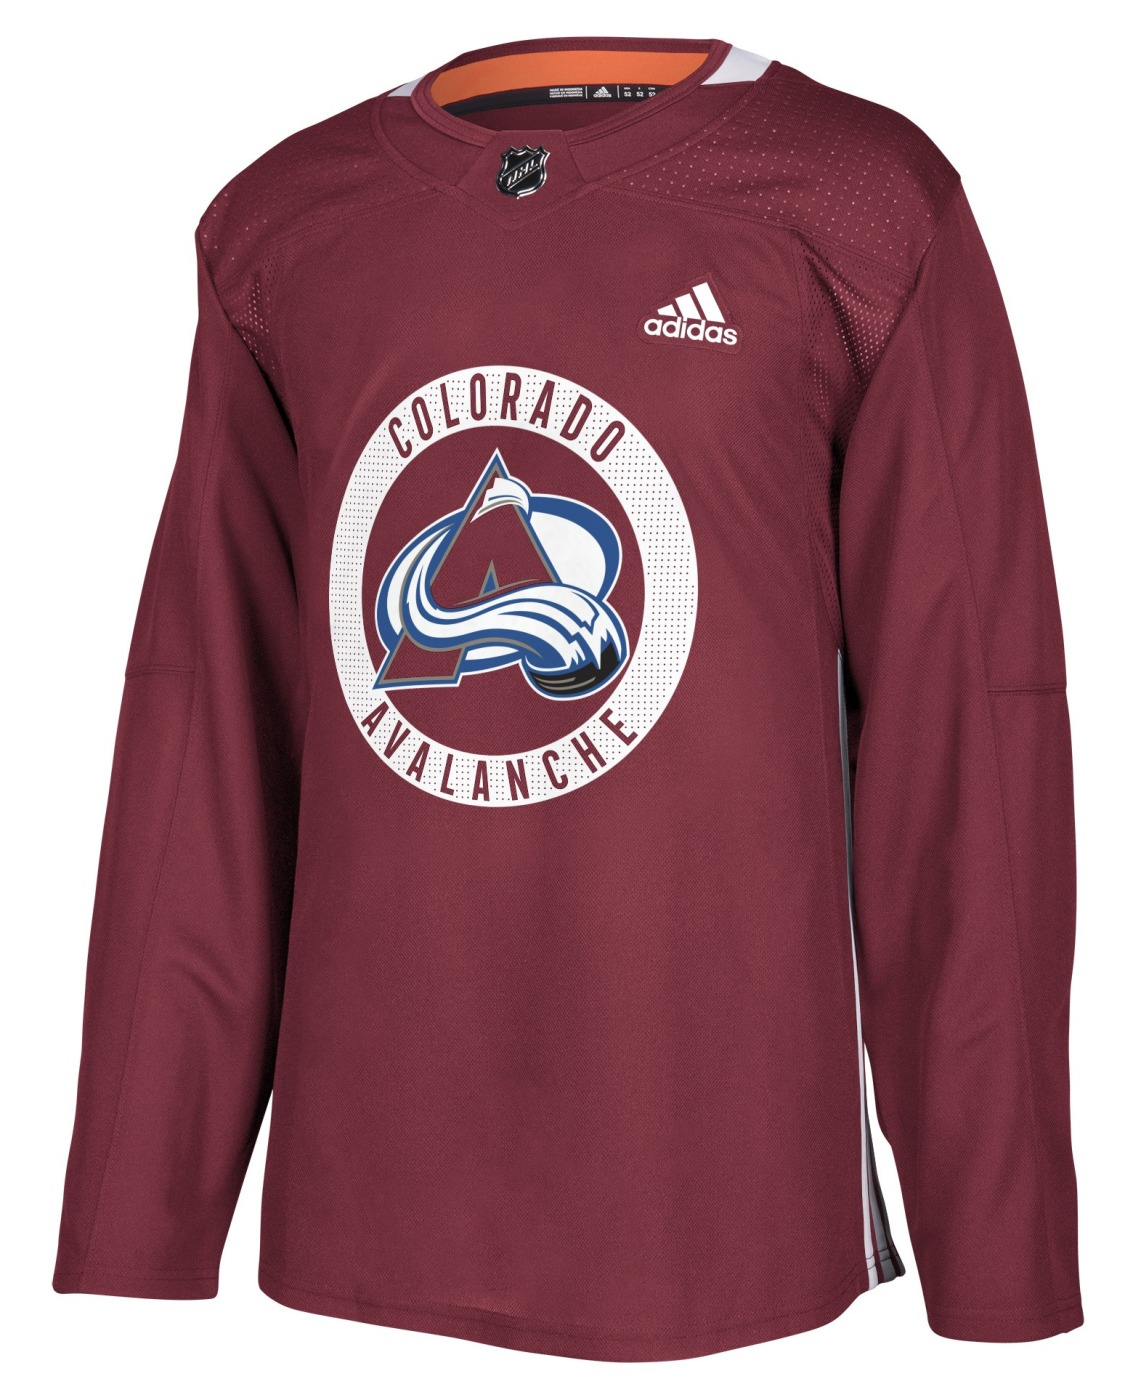 Colorado Avalanche Adidas NHL Men's Climalite Authentic Practice Jersey